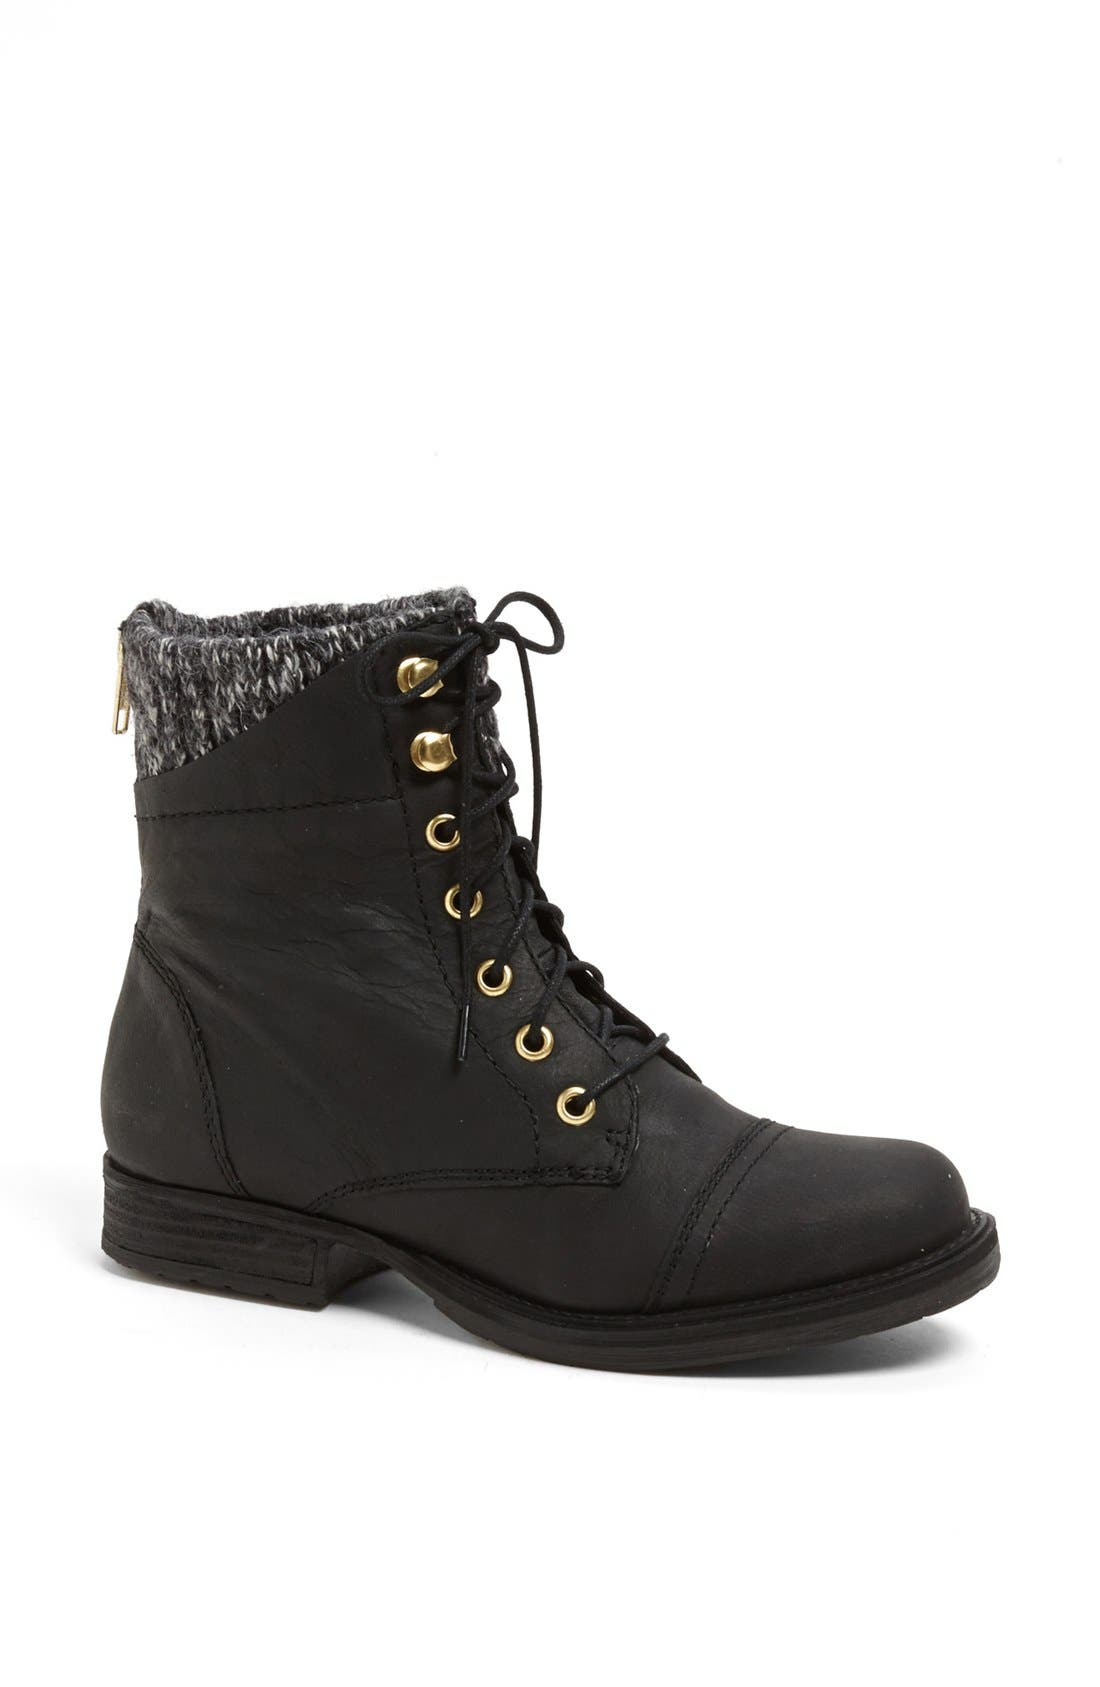 Main Image - Steve Madden 'Jacksin' Leather Boot